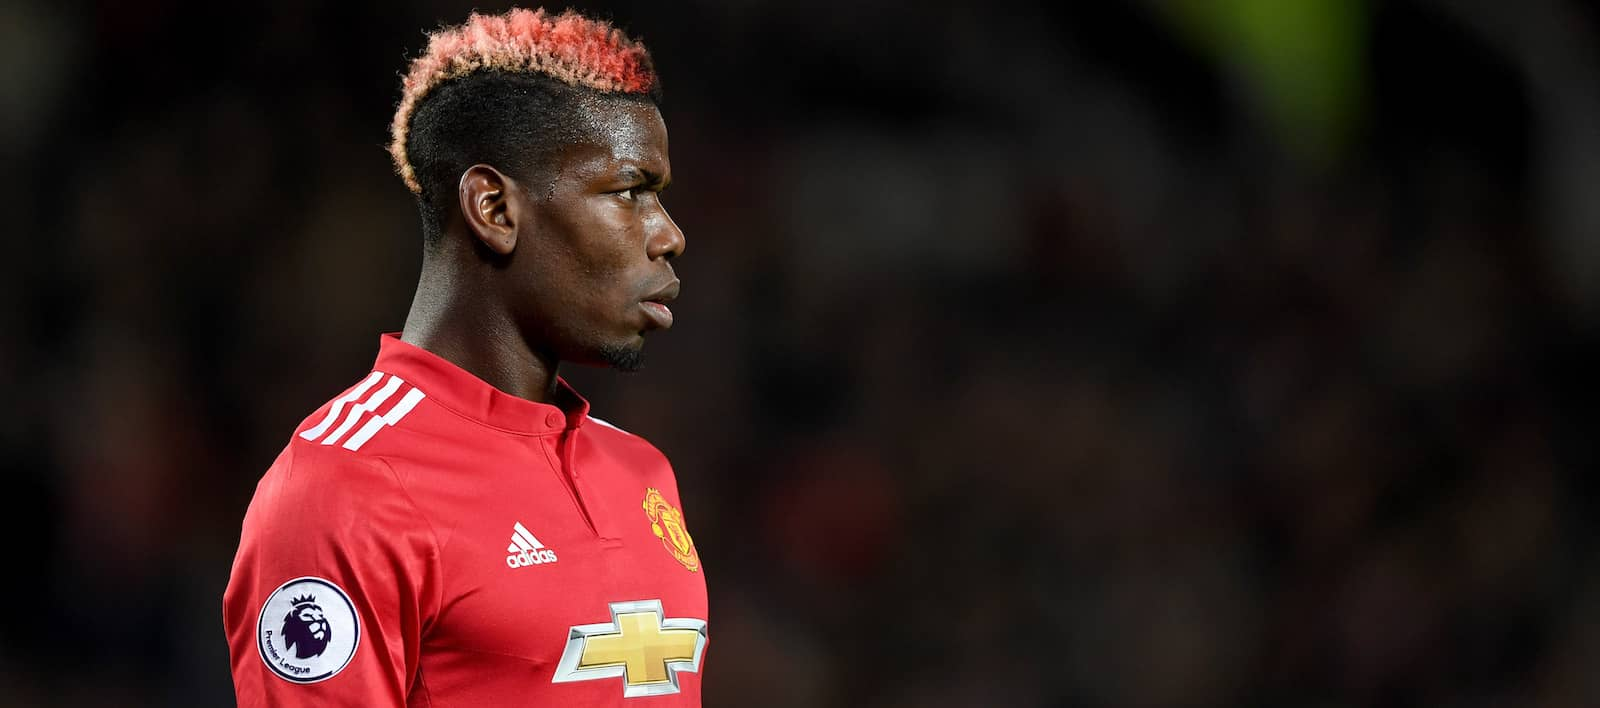 Man United will 'seriously consider' selling Pogba to Barcelona for £200m